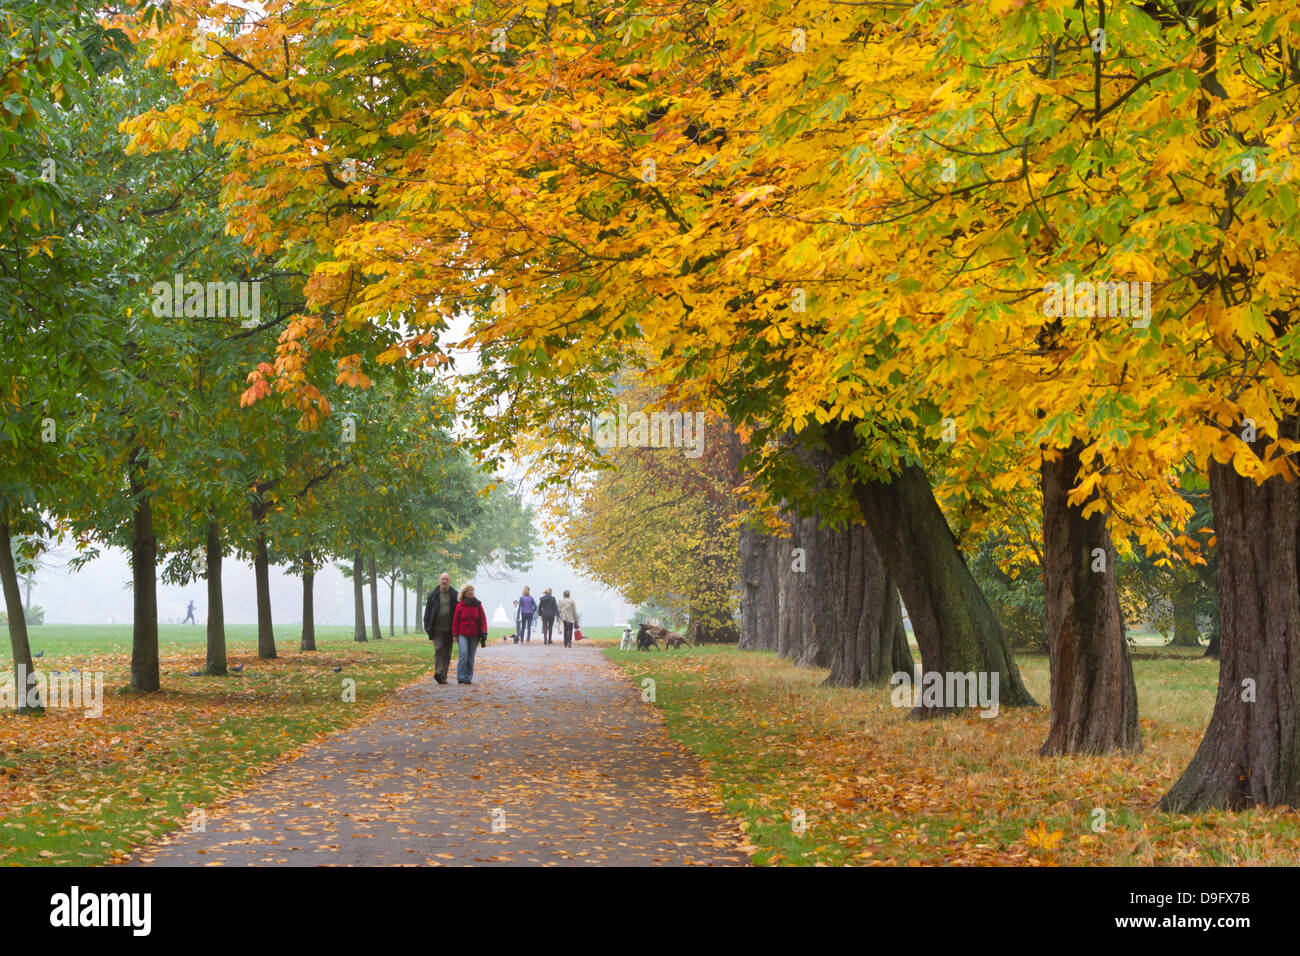 Autumnal trees, Hyde Park, London, England, UK - Stock Image